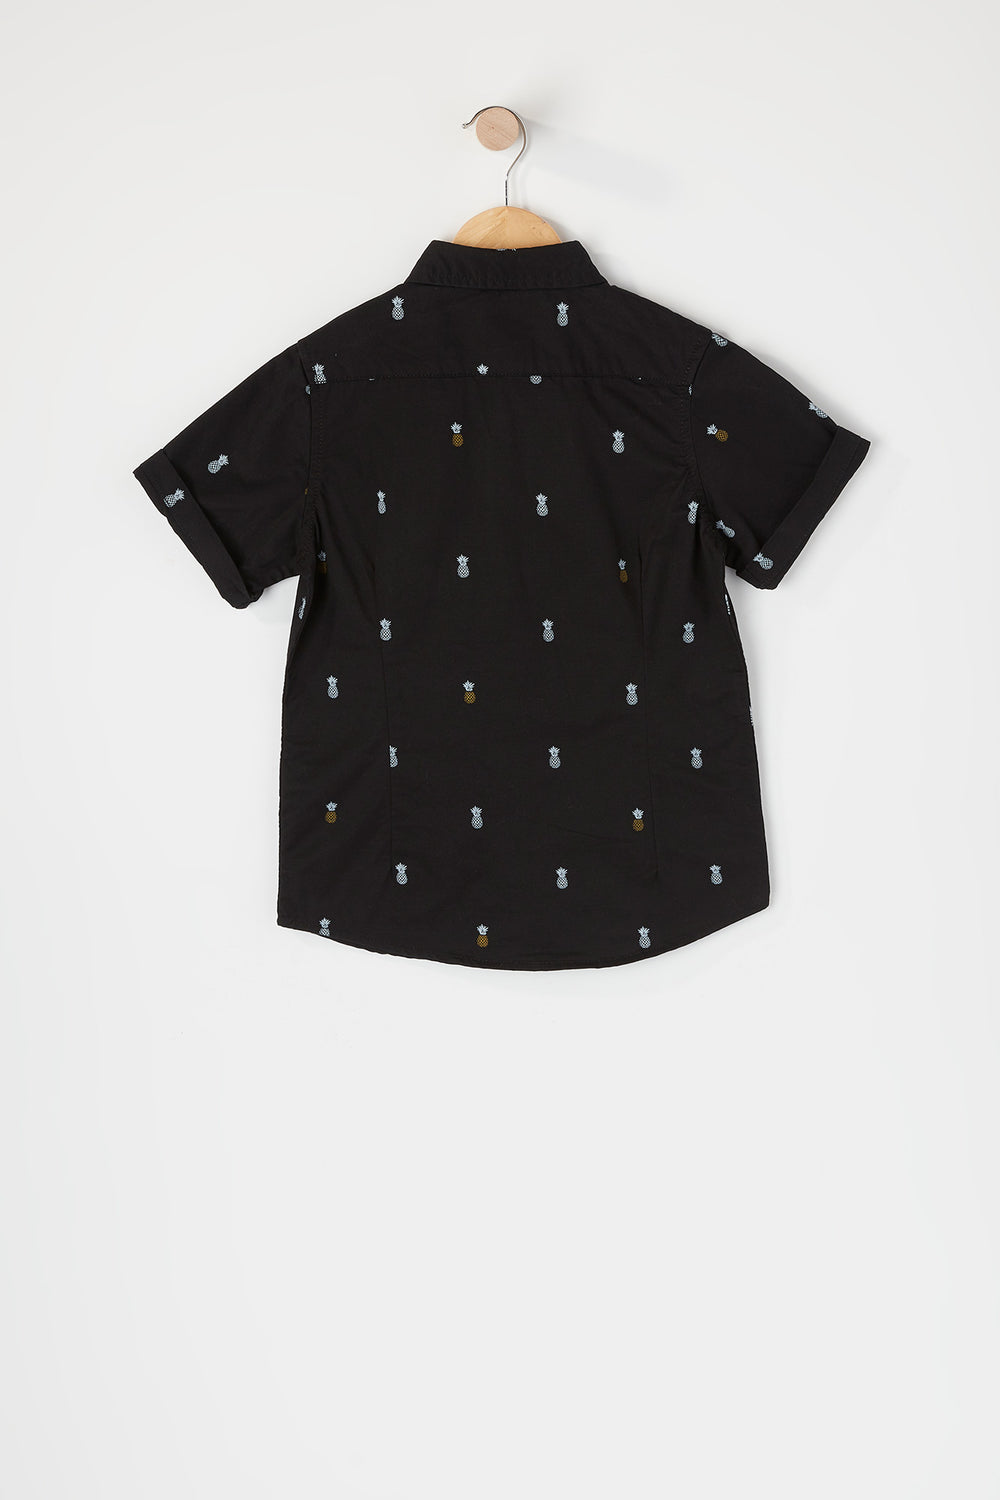 Boys Printed Button-Up Short Sleeve Shirt Black